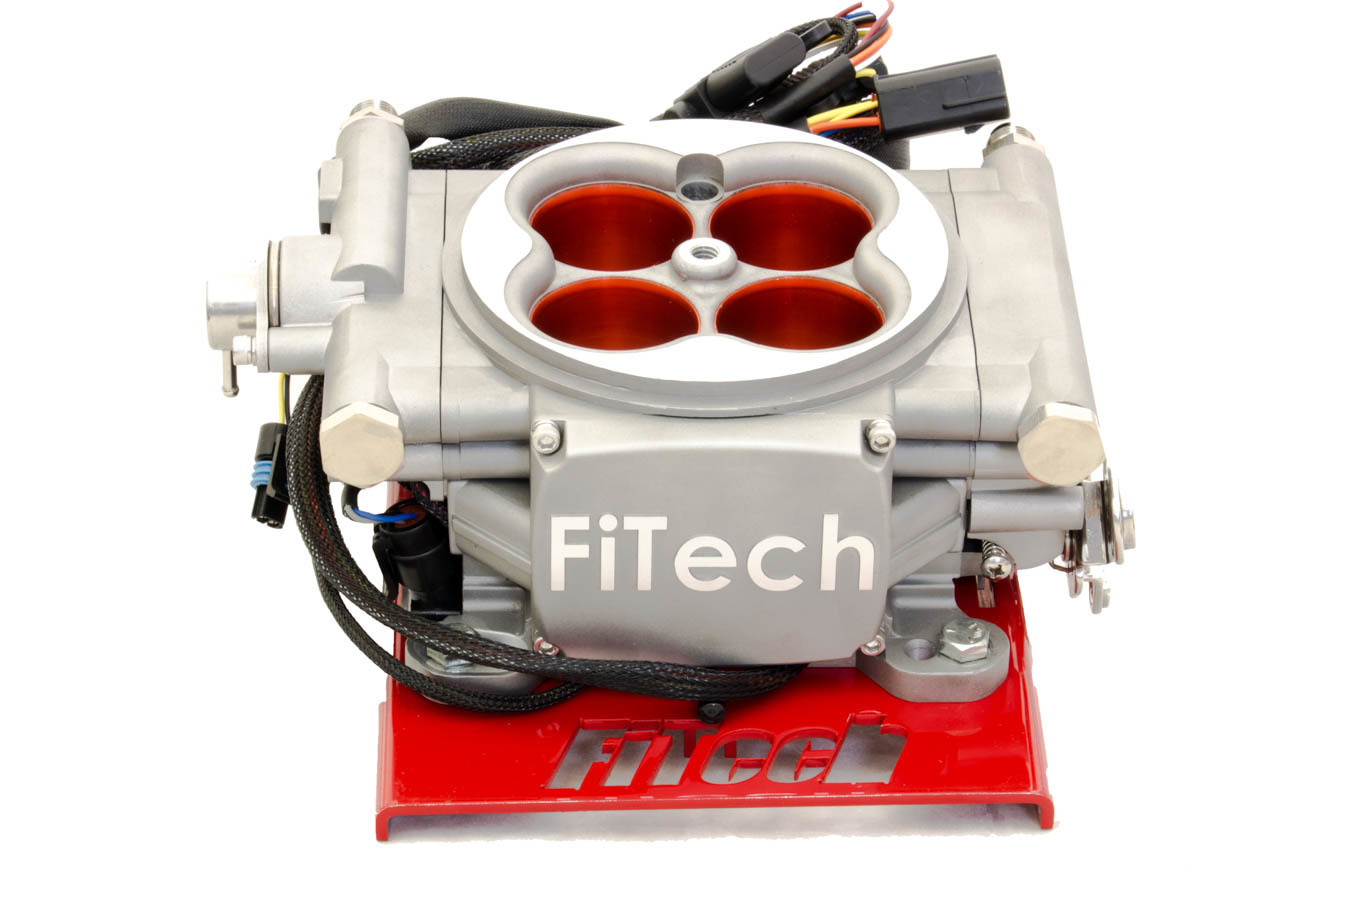 Fitech Fuel Injection 30003 Fuel Injection, Go Street EFI, Throttle Body, Square Bore, 55 lb/hr Injectors, Aluminum, Polished, Universal, Kit